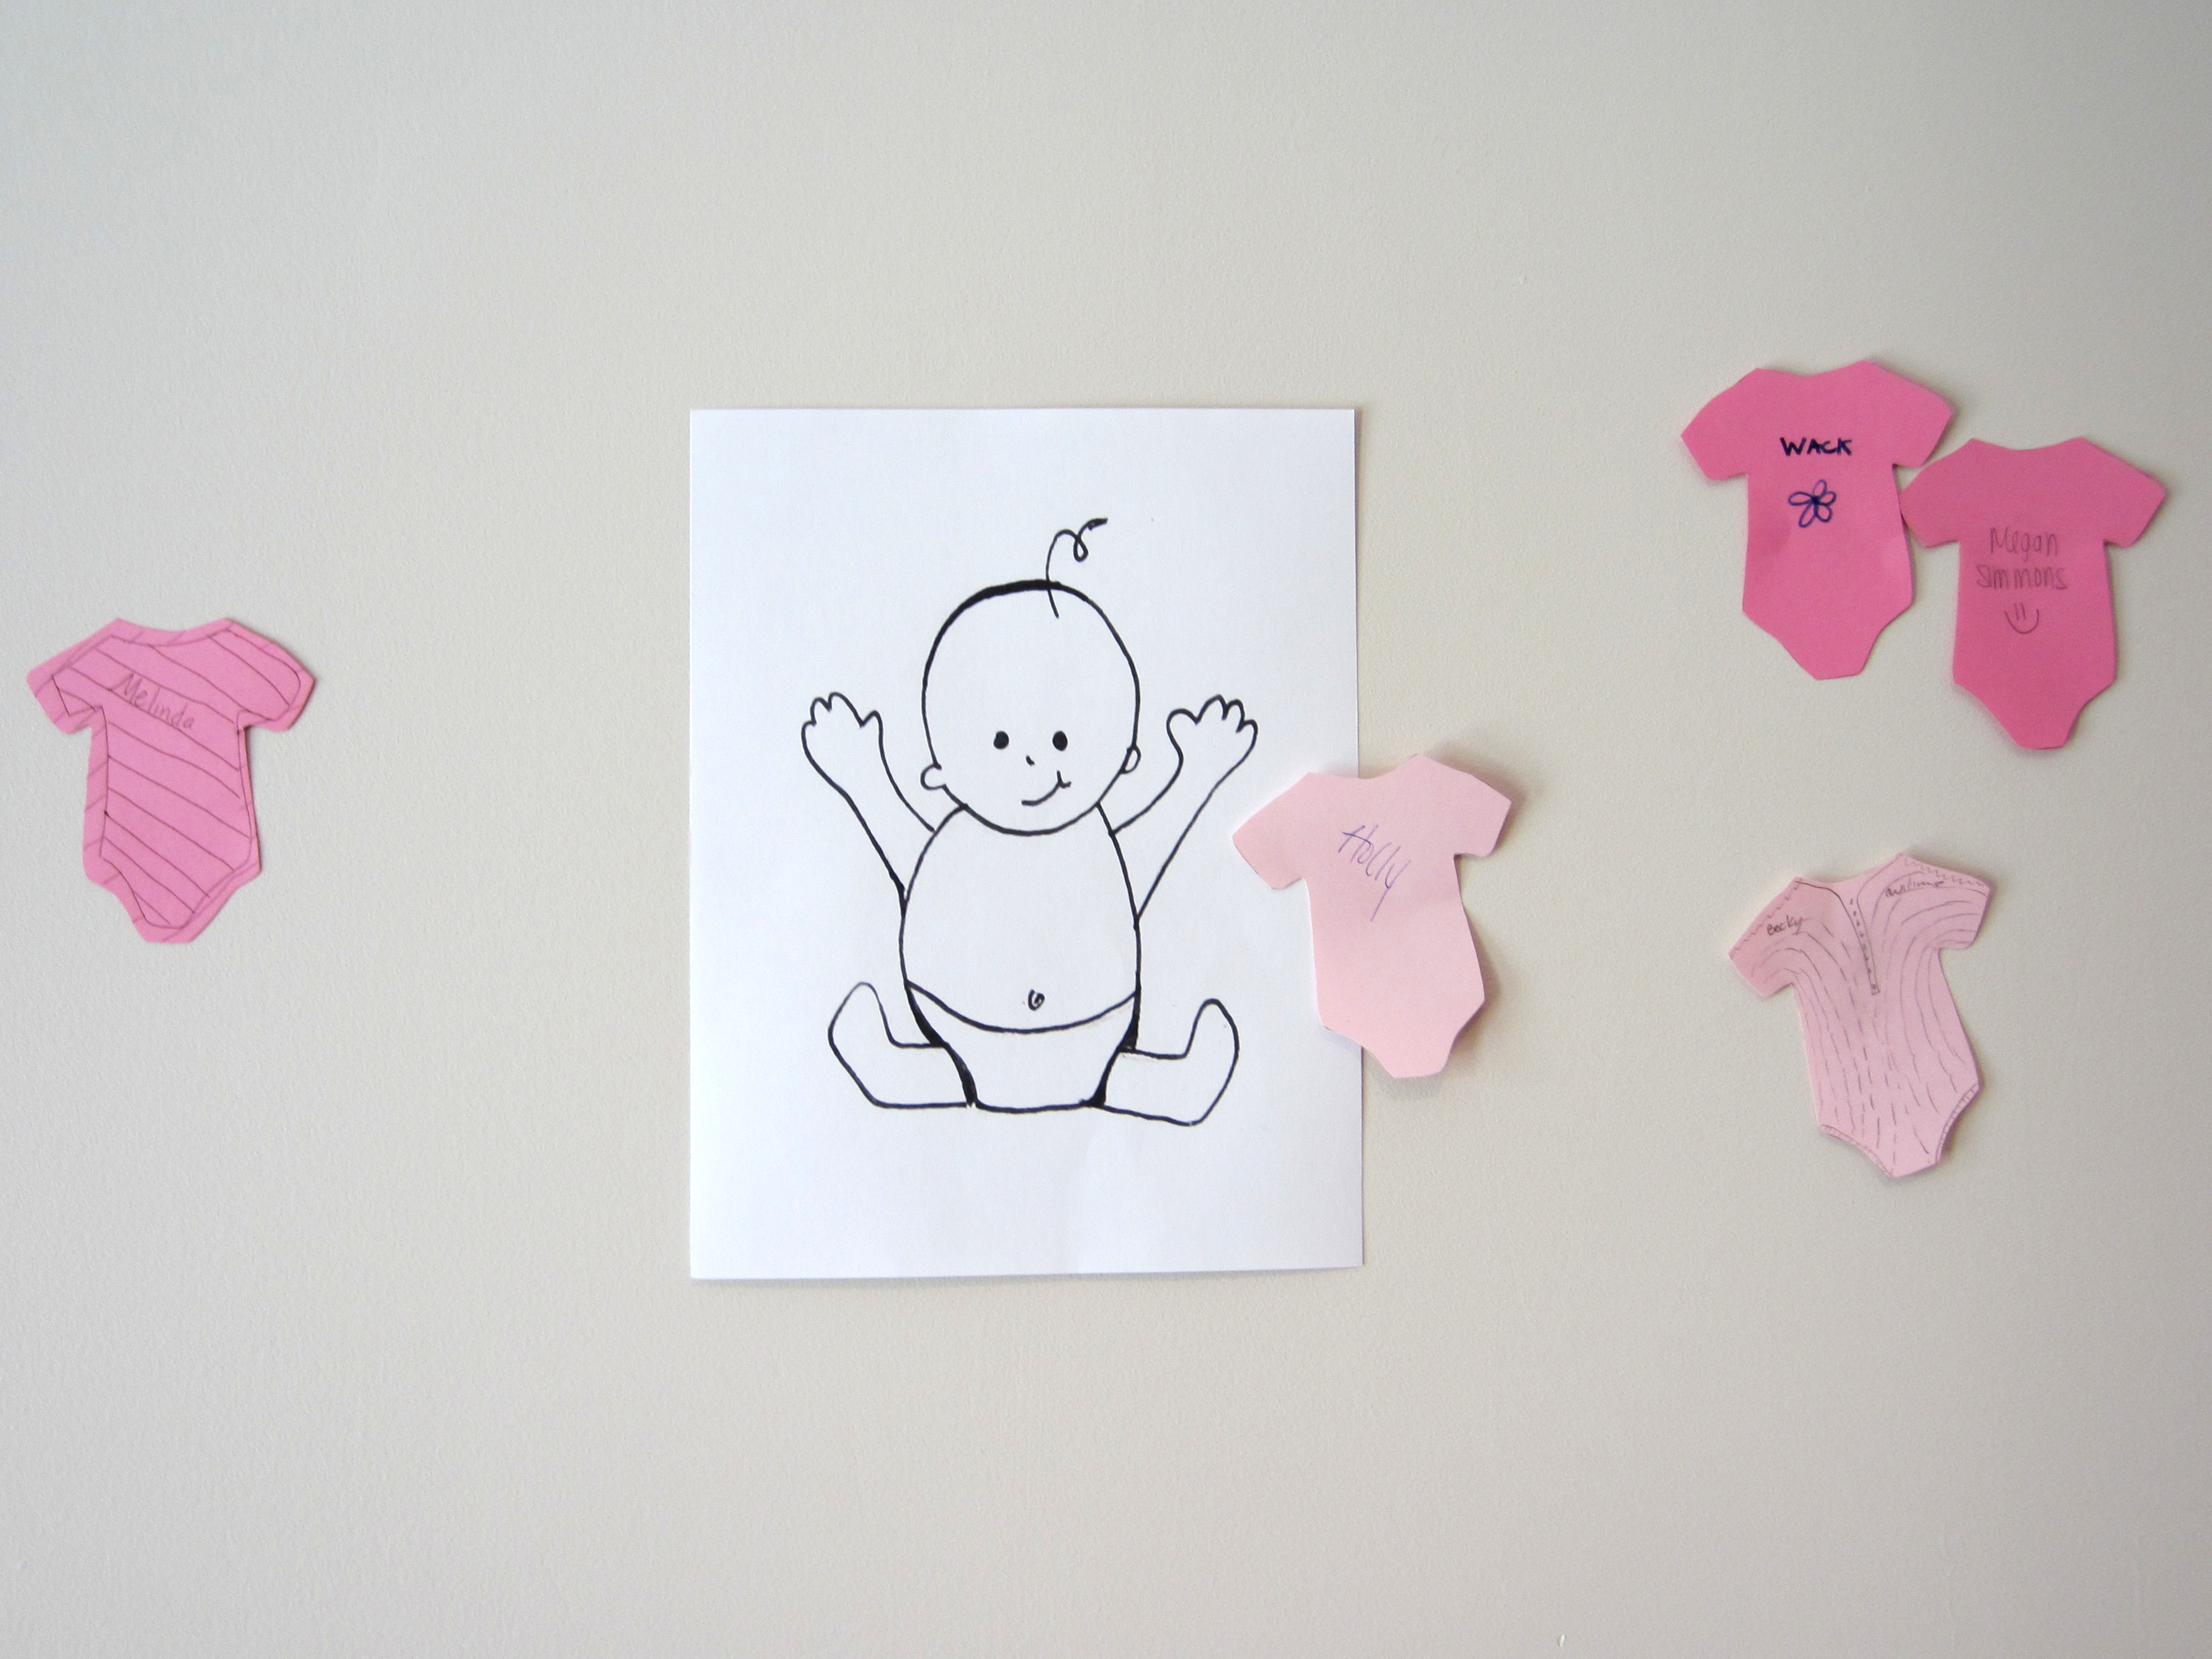 Pin The Onesie On The Baby